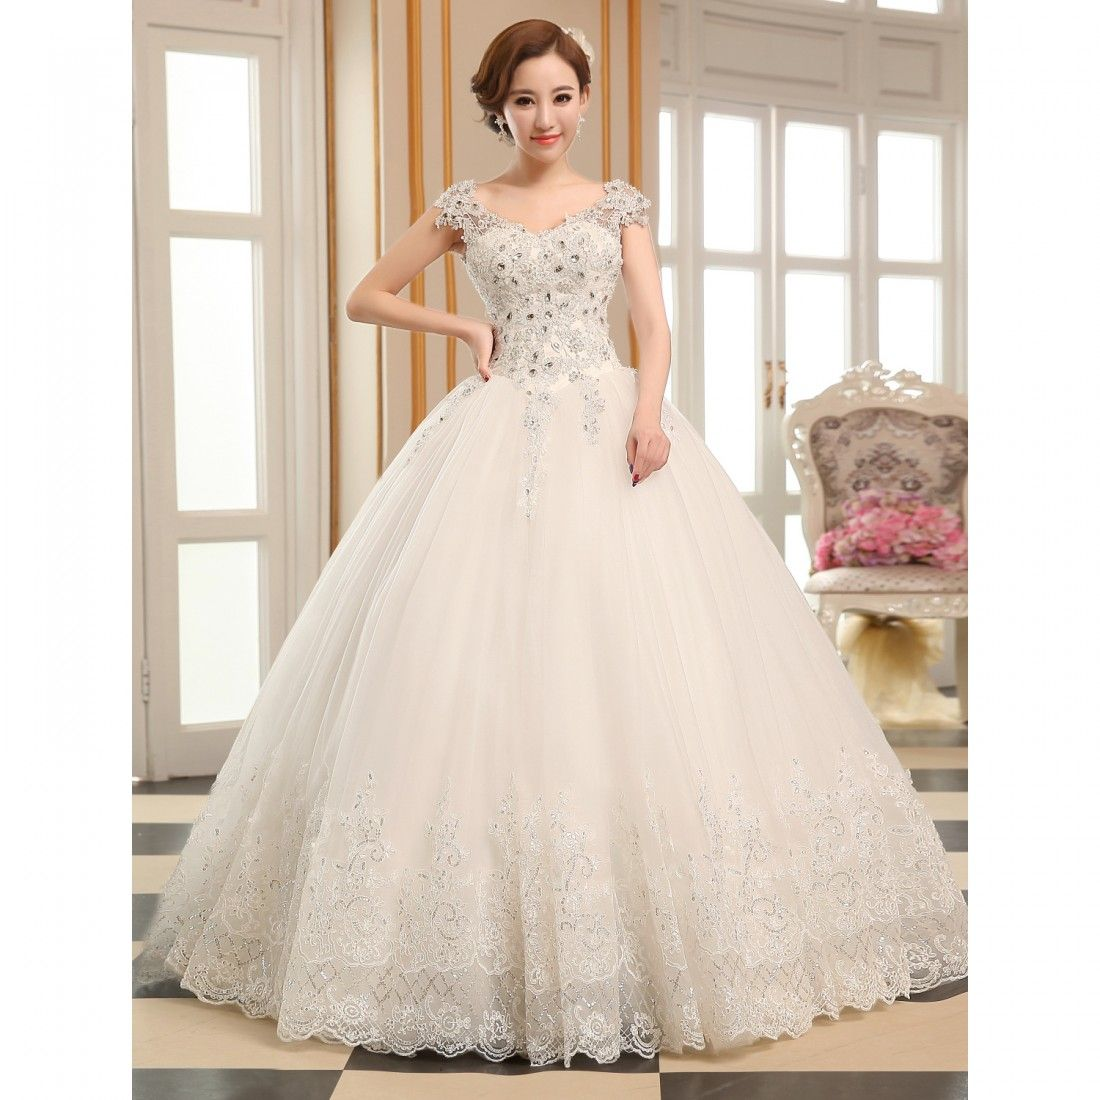 Lightinthebox wedding dresses  Ball Gown Vneck Floorlength Tulle Wedding Dress  Class with a